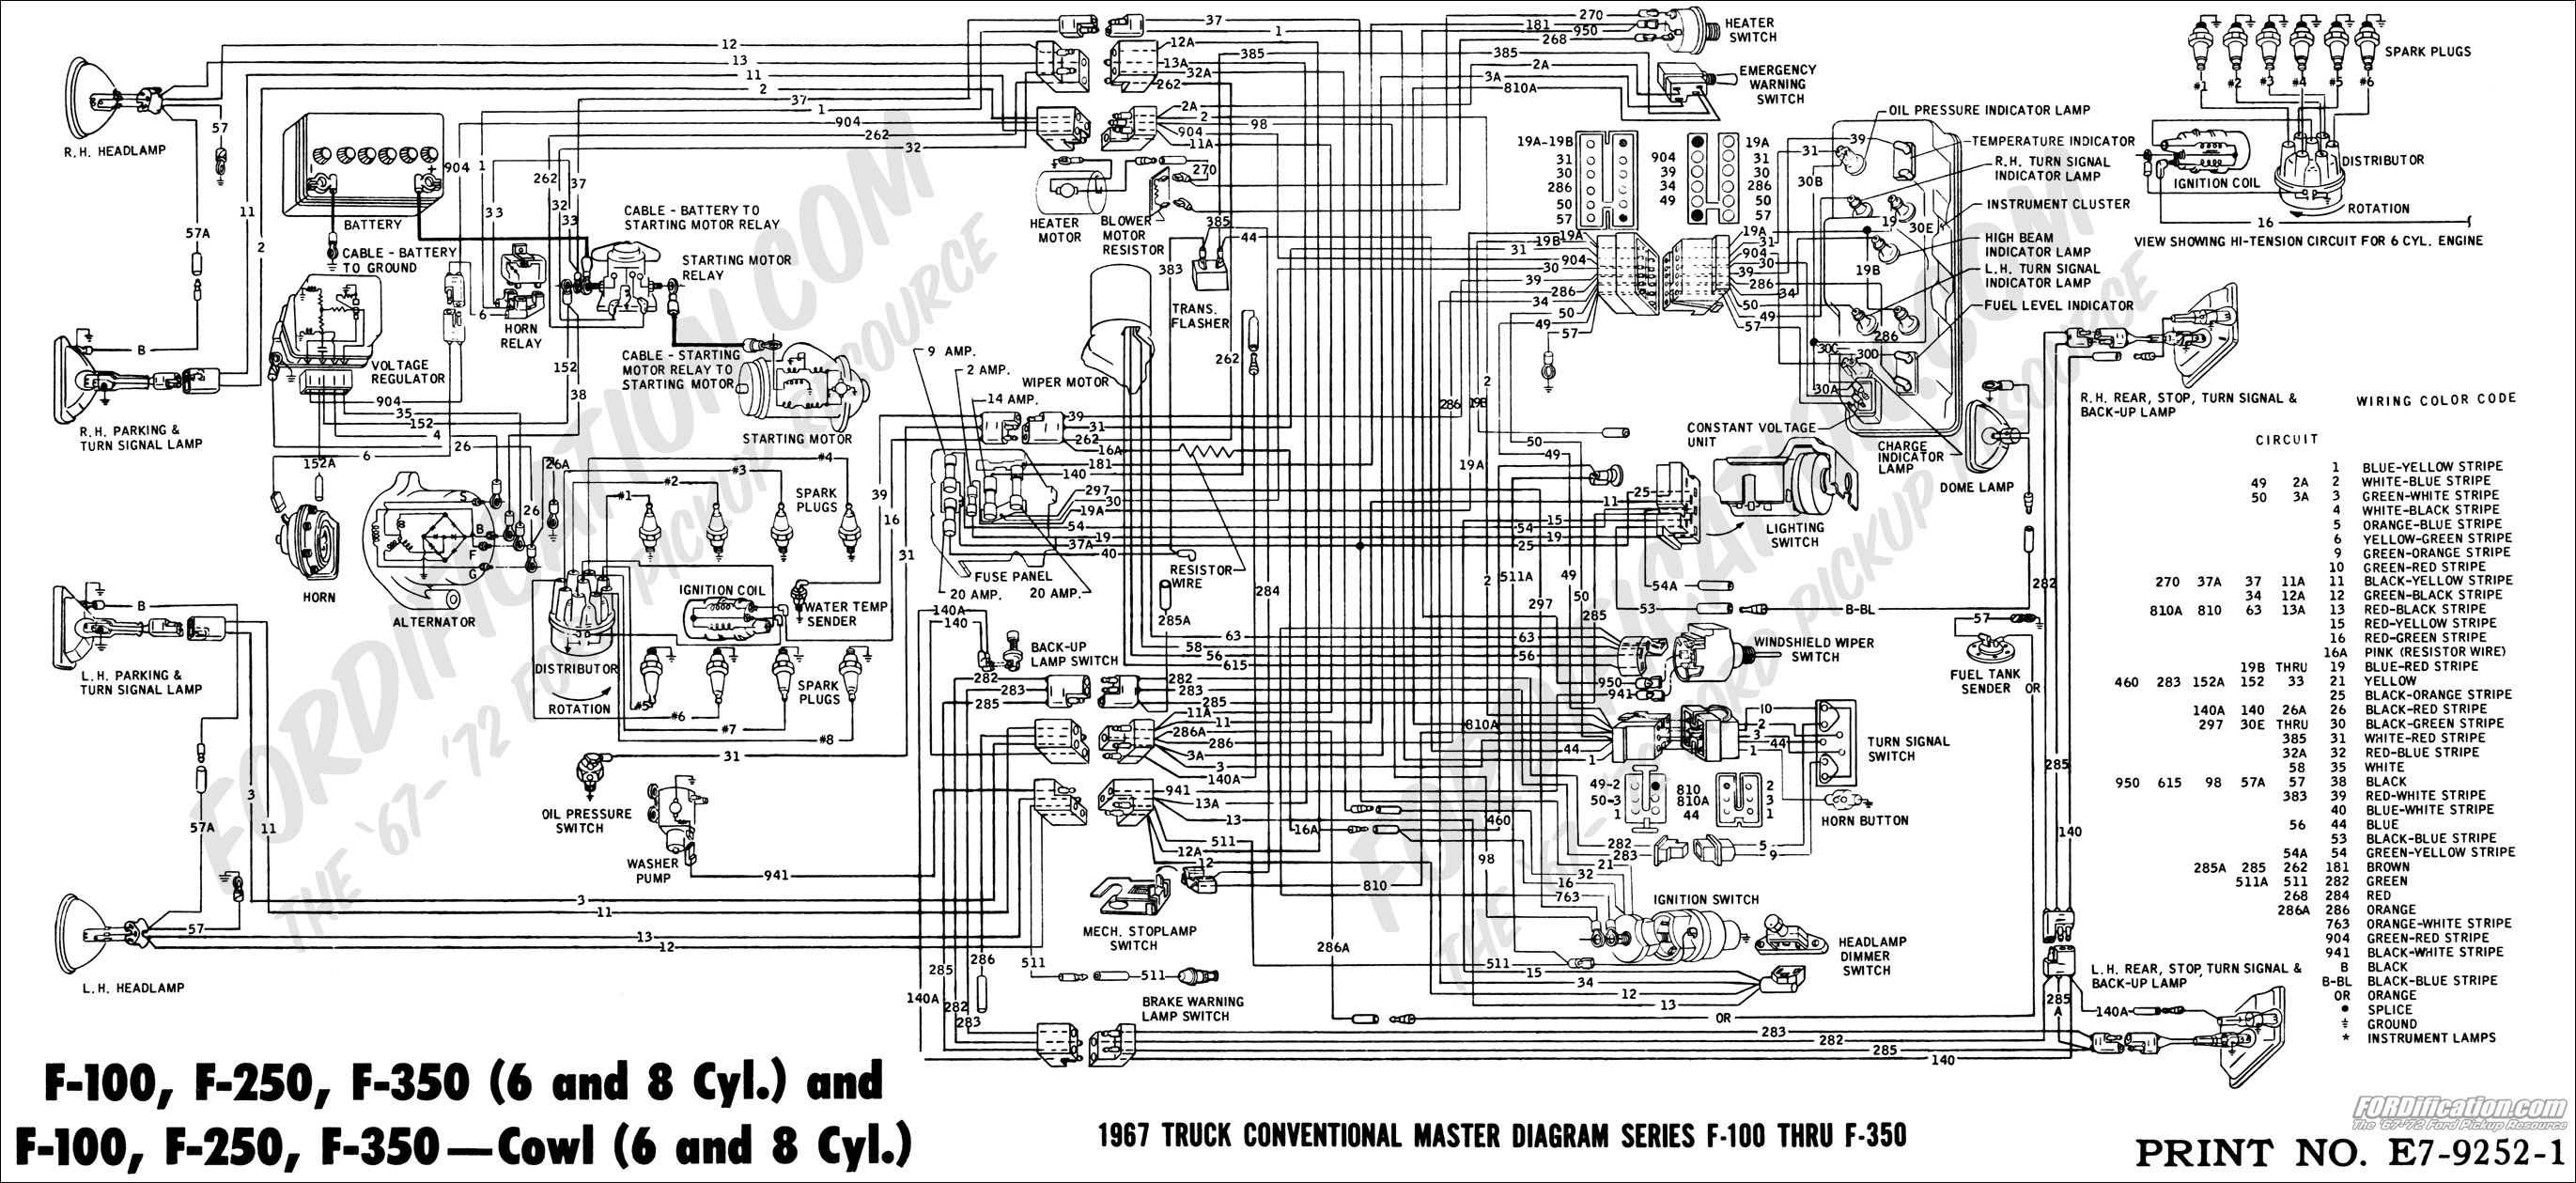 2008 ford f 650 wiring diagram Images Gallery. ford truck technical drawings  and schematics section h